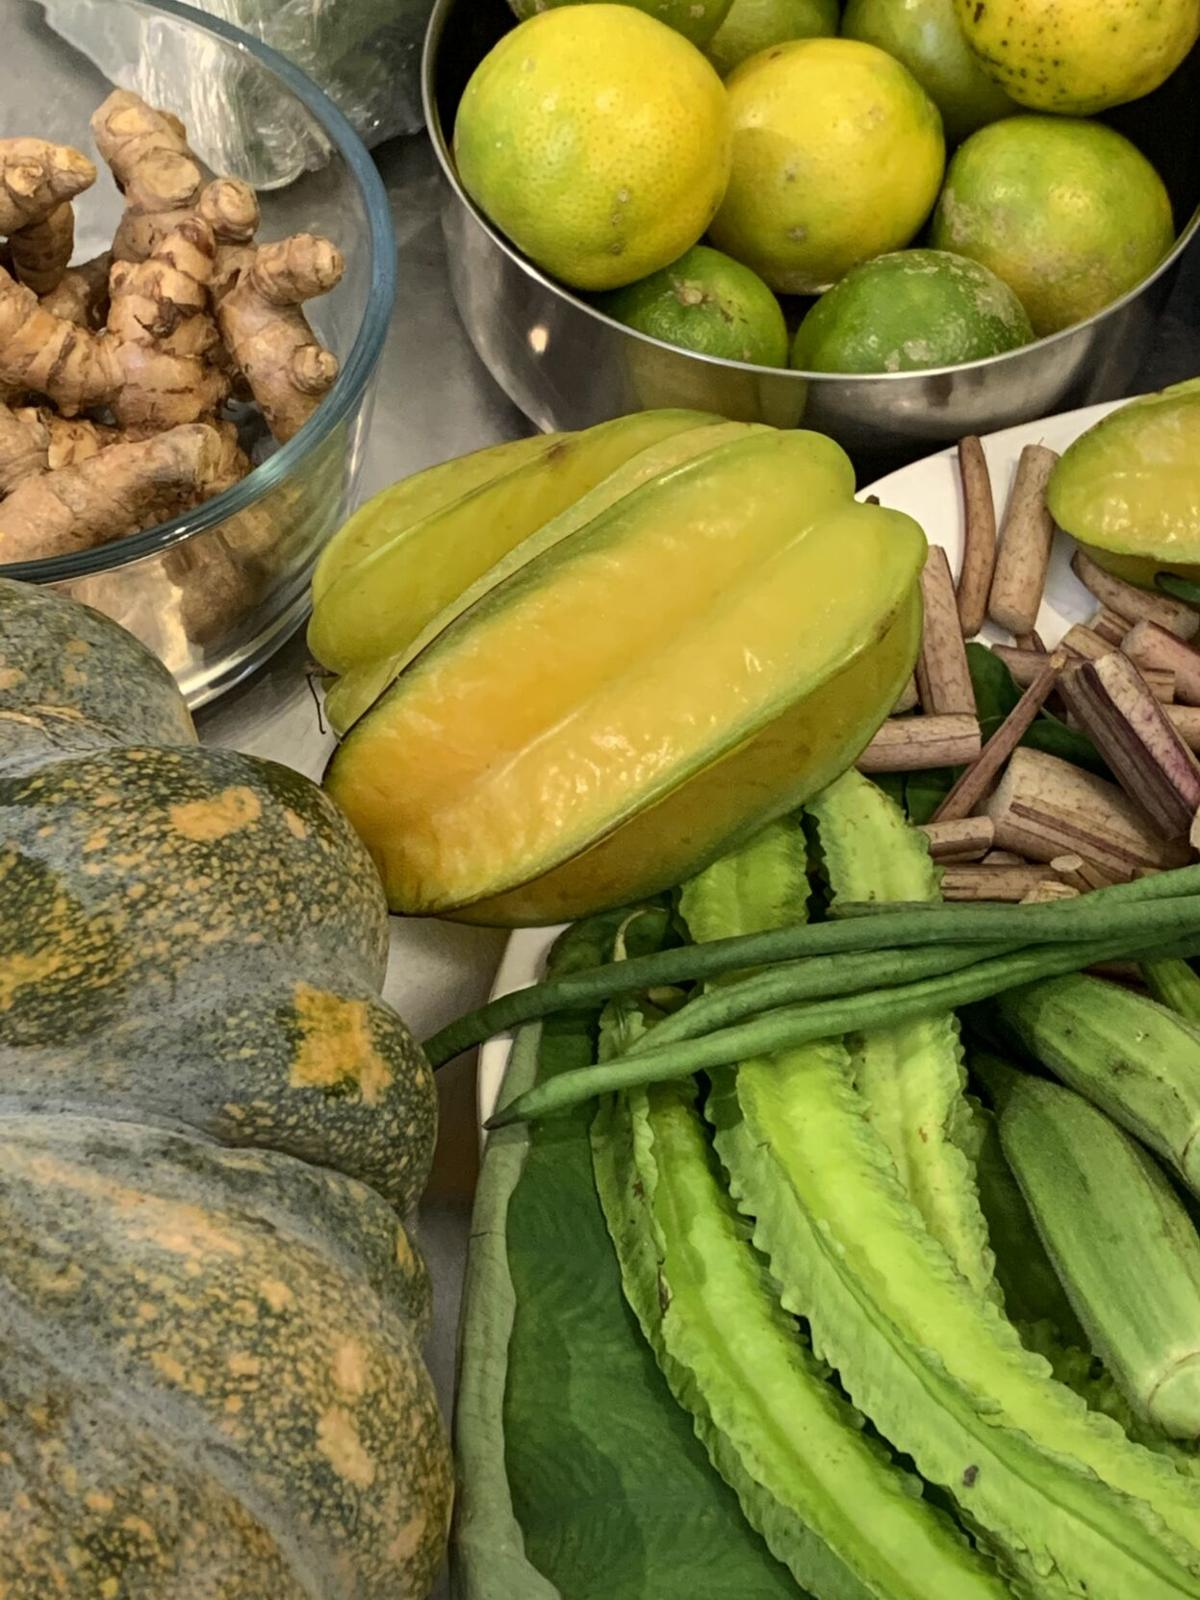 Culinary workshop to highlight local produce, ties between food and culture